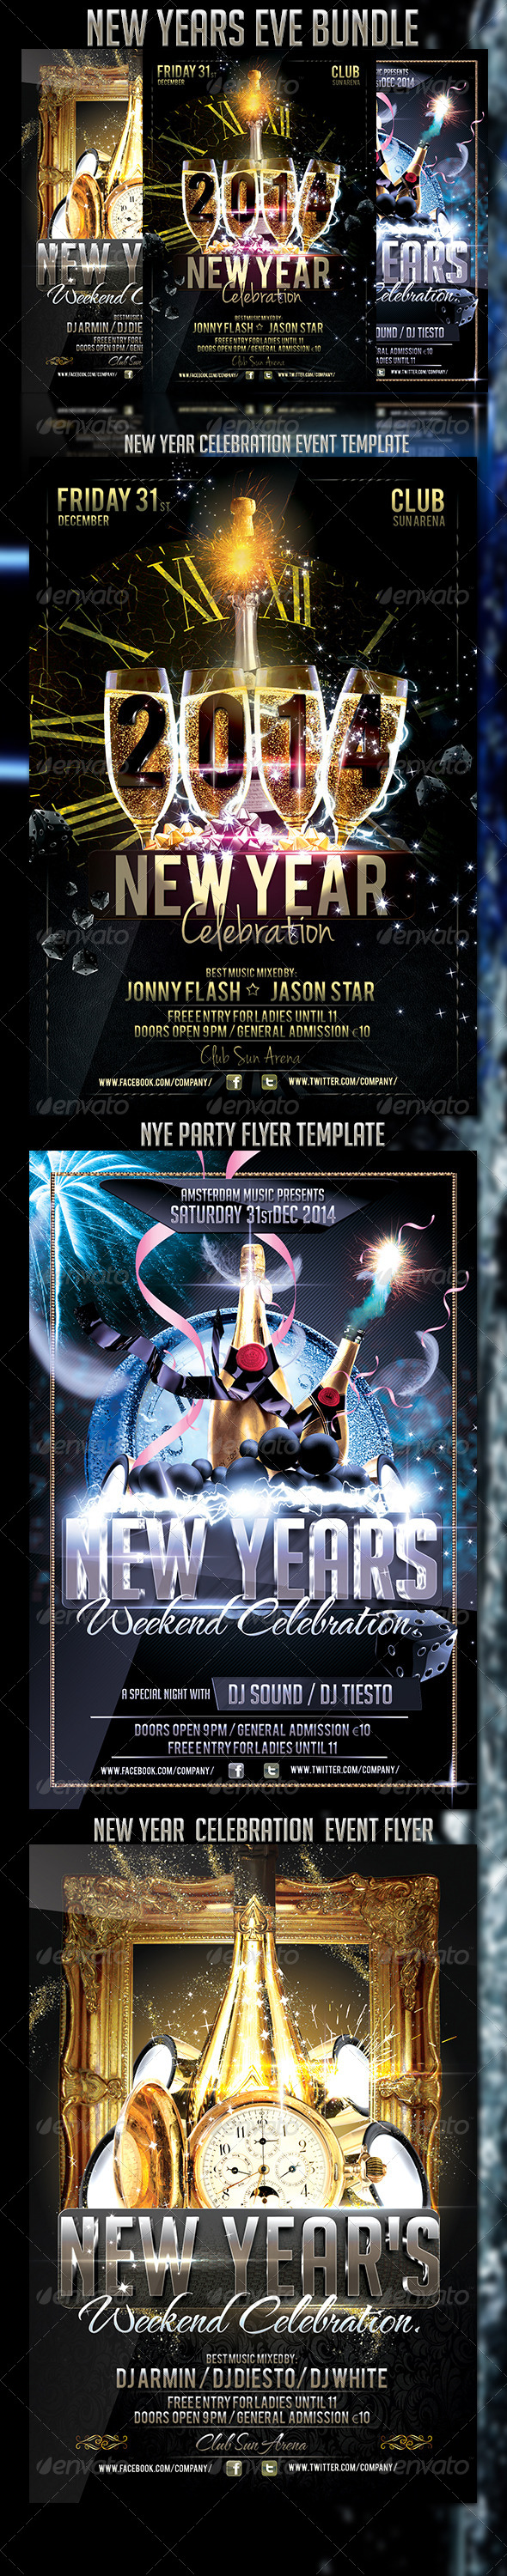 GraphicRiver New Years Eve Bundle 6400218